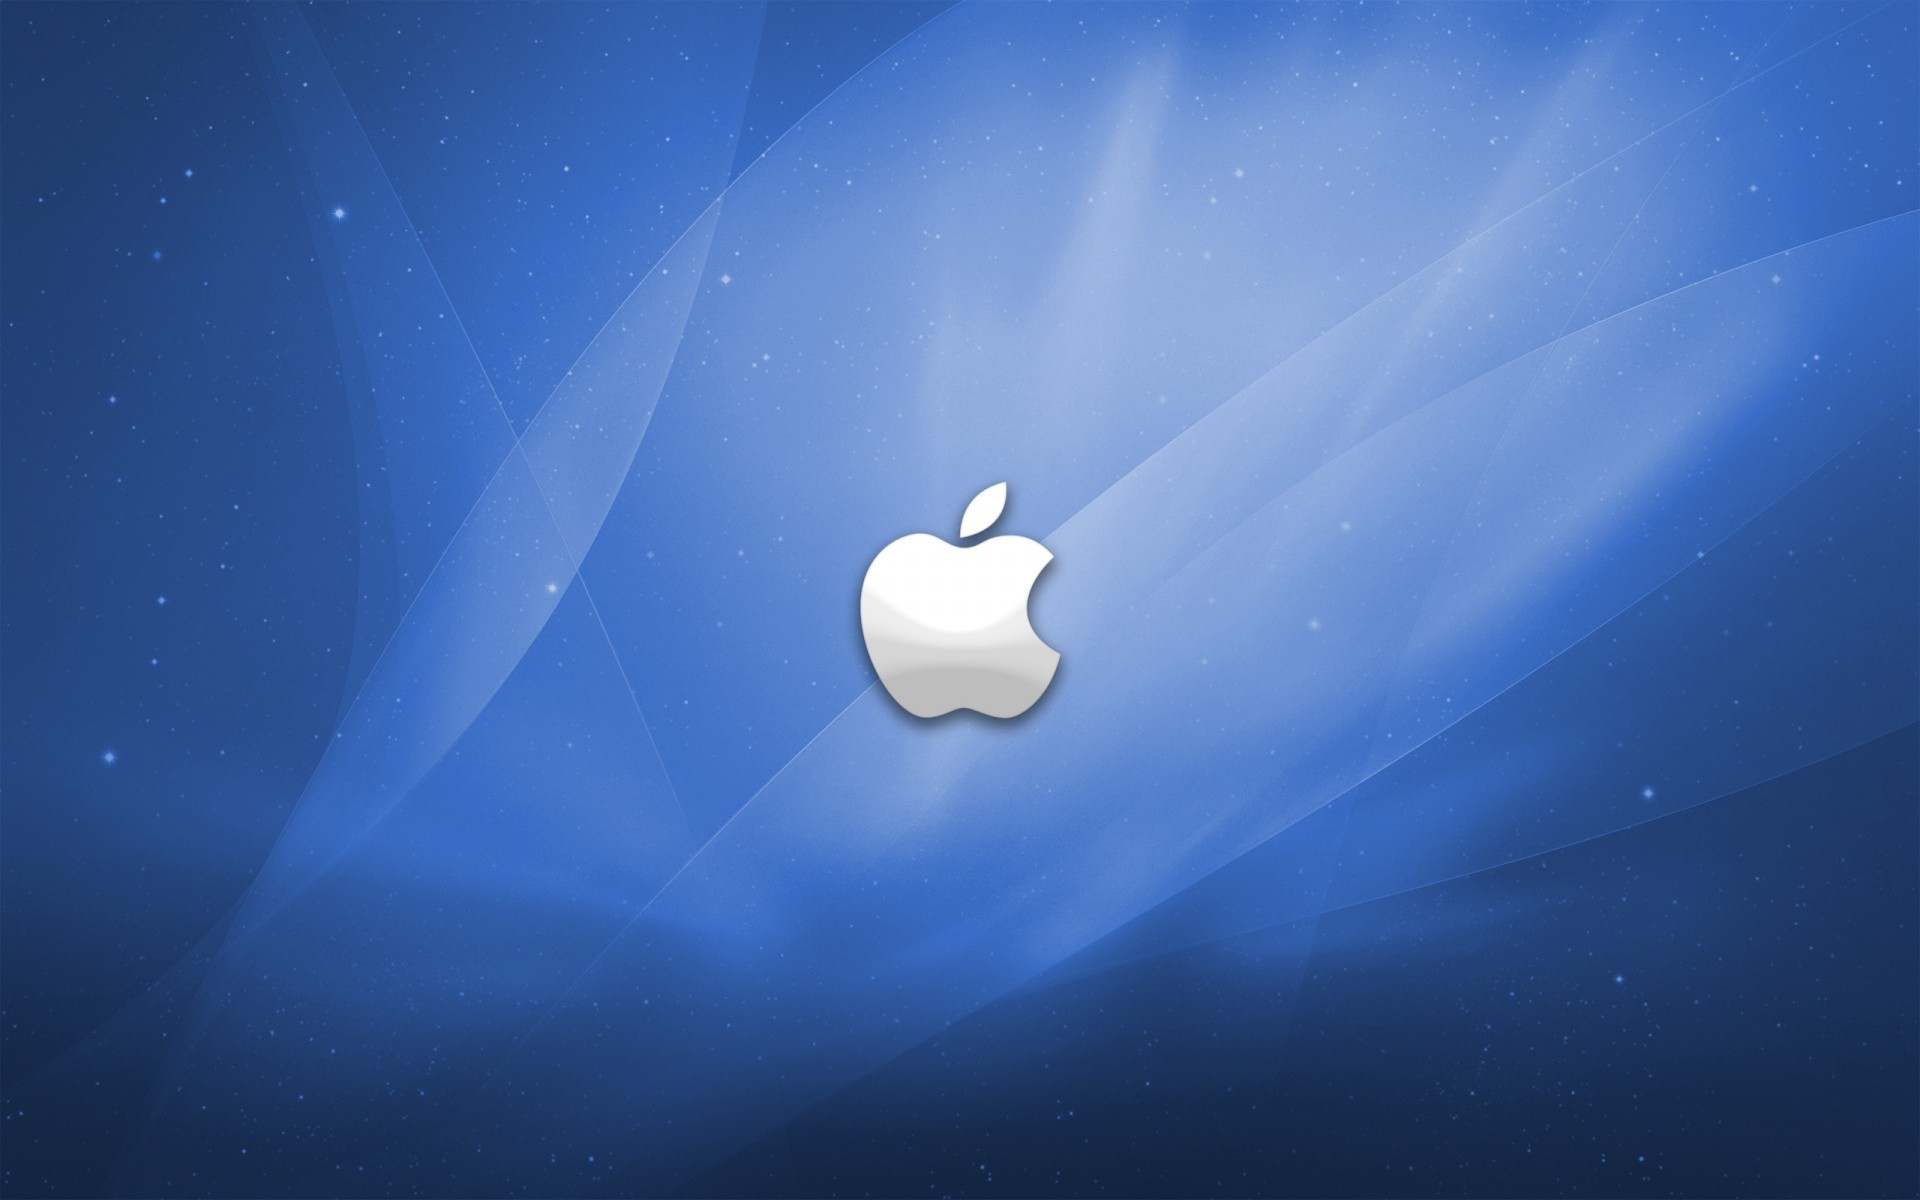 Cool Apple Related Pics Google Search: Apple Background ·① Download Free Amazing Full HD